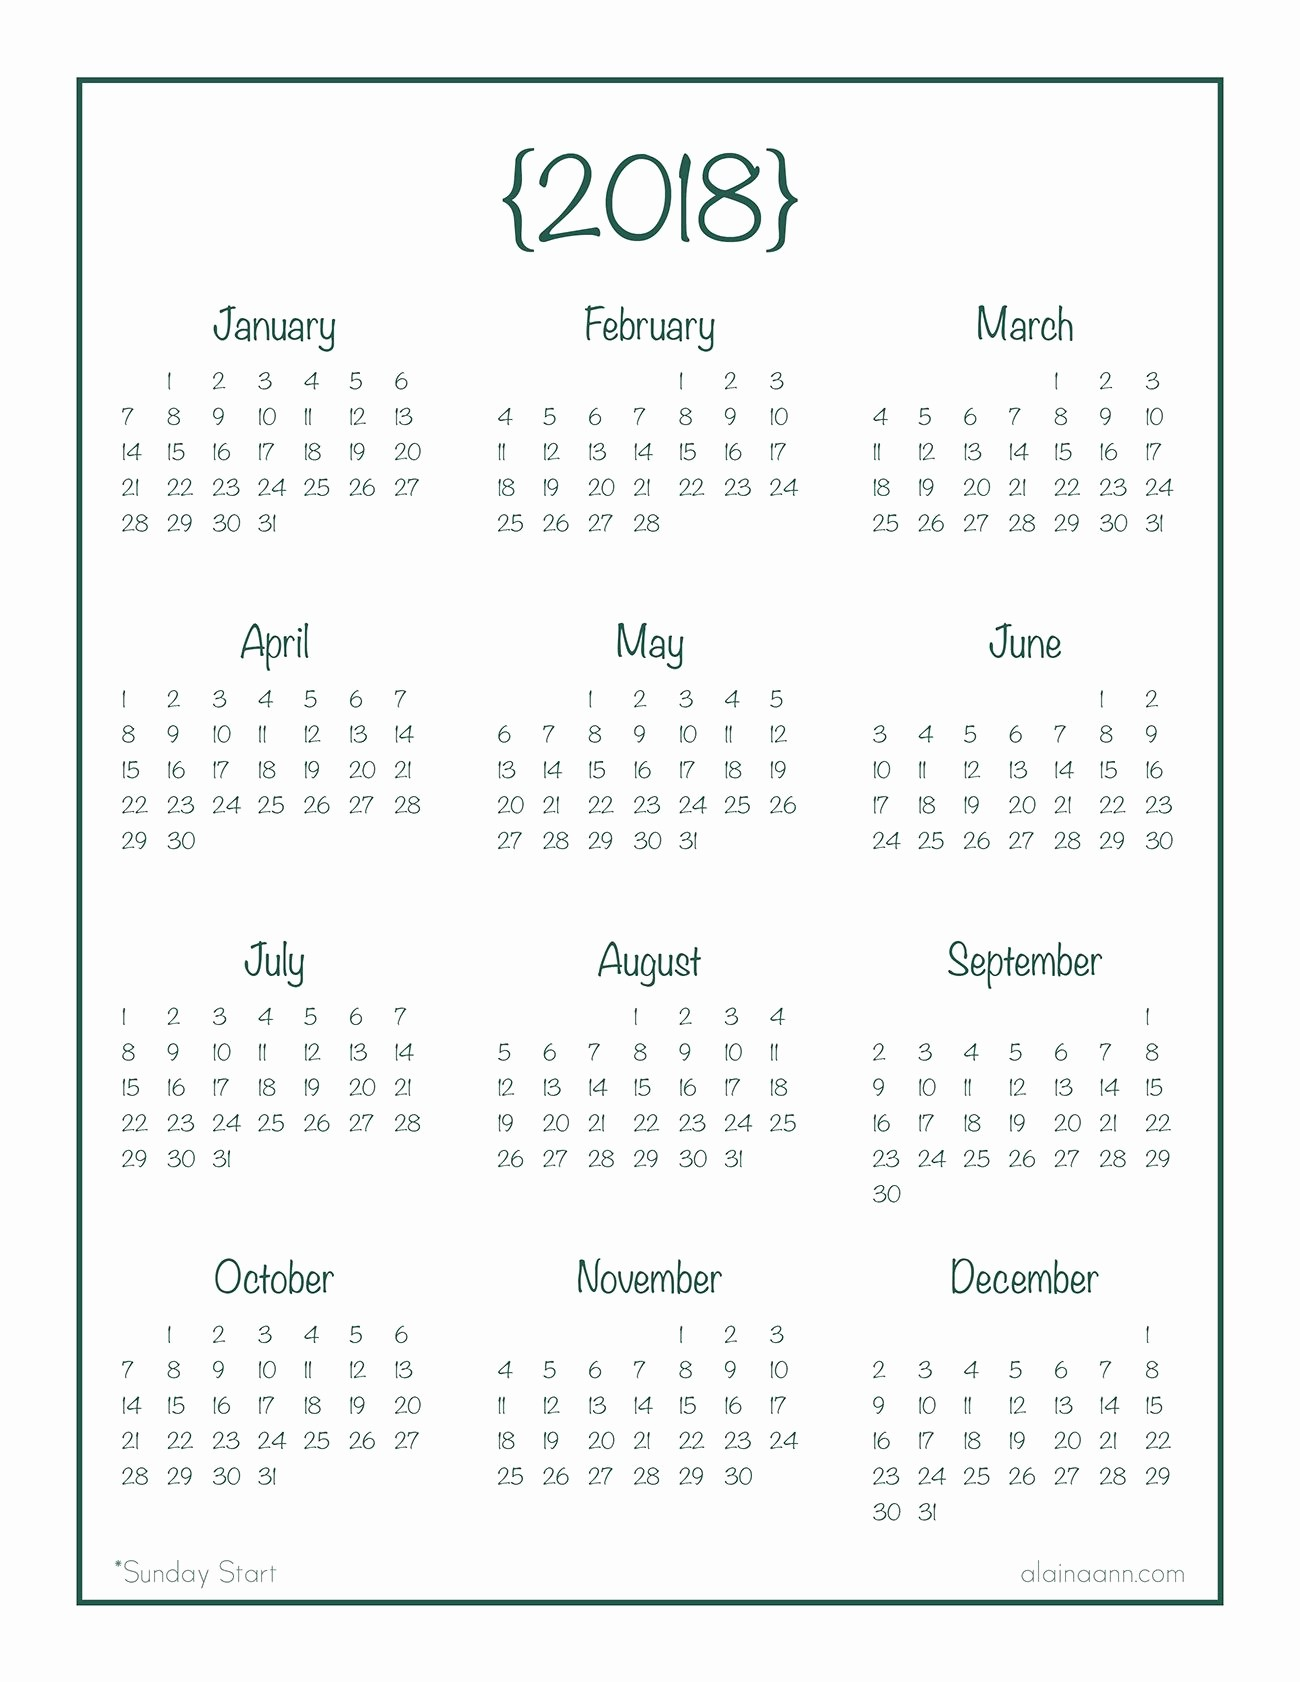 Year at A Glance Printable Awesome 2018 Year at A Glance Calendar Free Printable